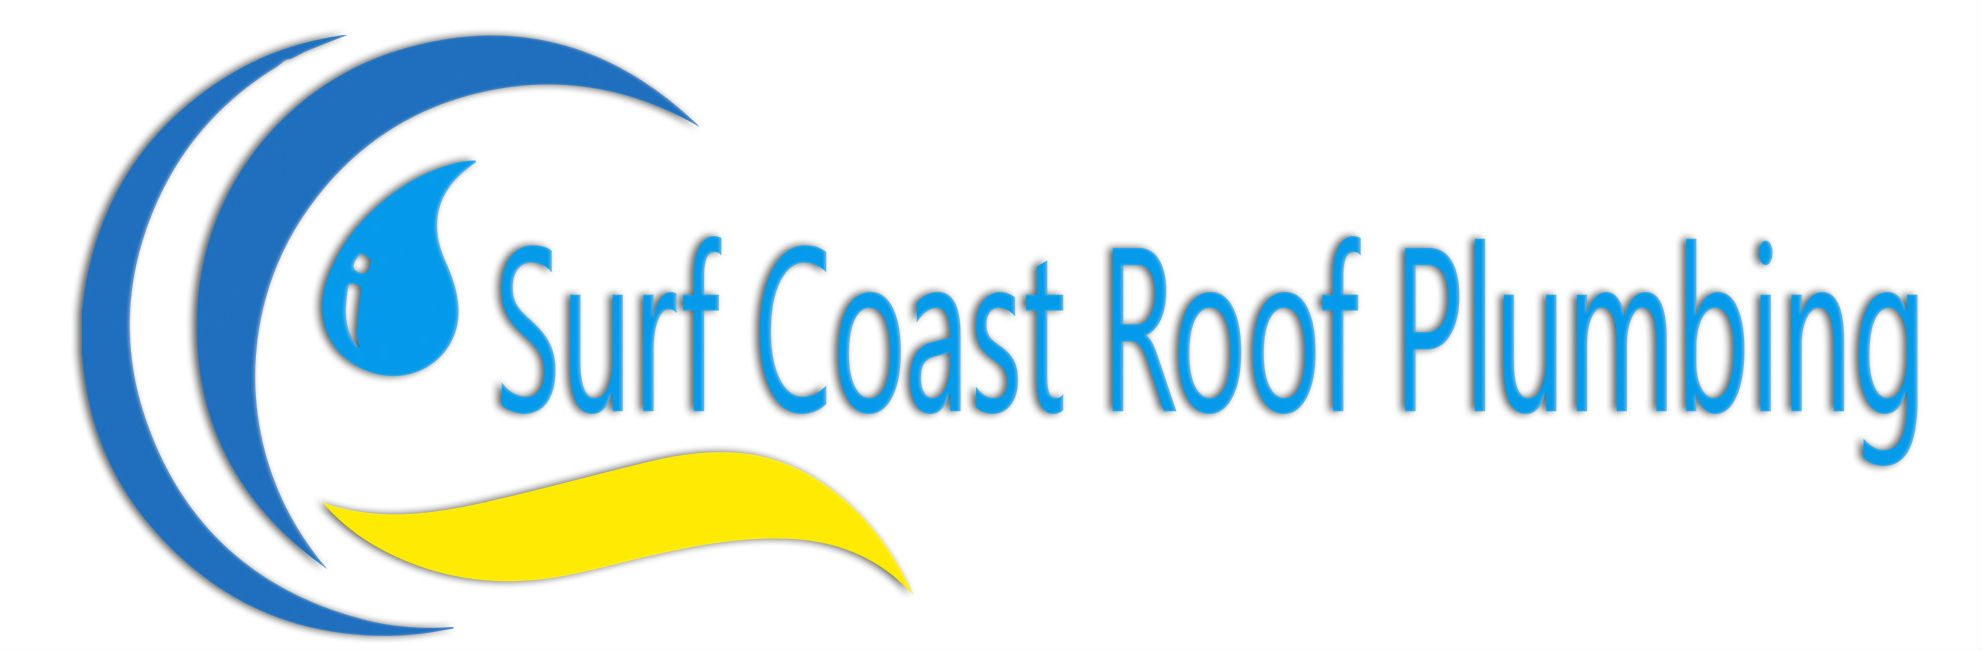 Surf Coast Roof Plumbing